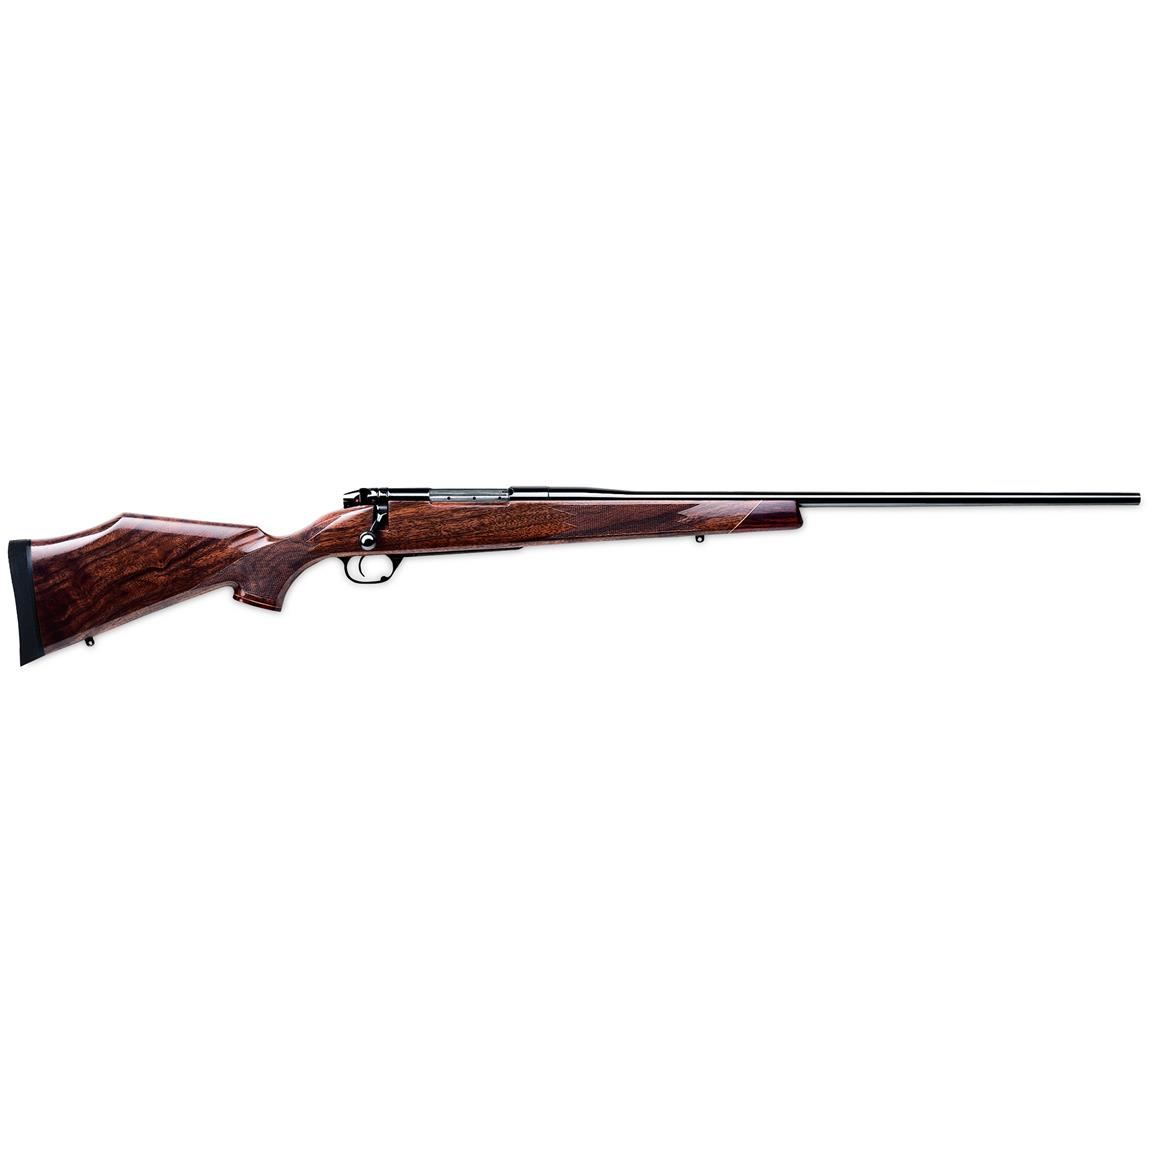 Weatherby Mark V Deluxe, Bolt Action, .340 Weatherby Magnum, Centerfire, DXM340WR6O, 747115510559, 26 inch Barrel